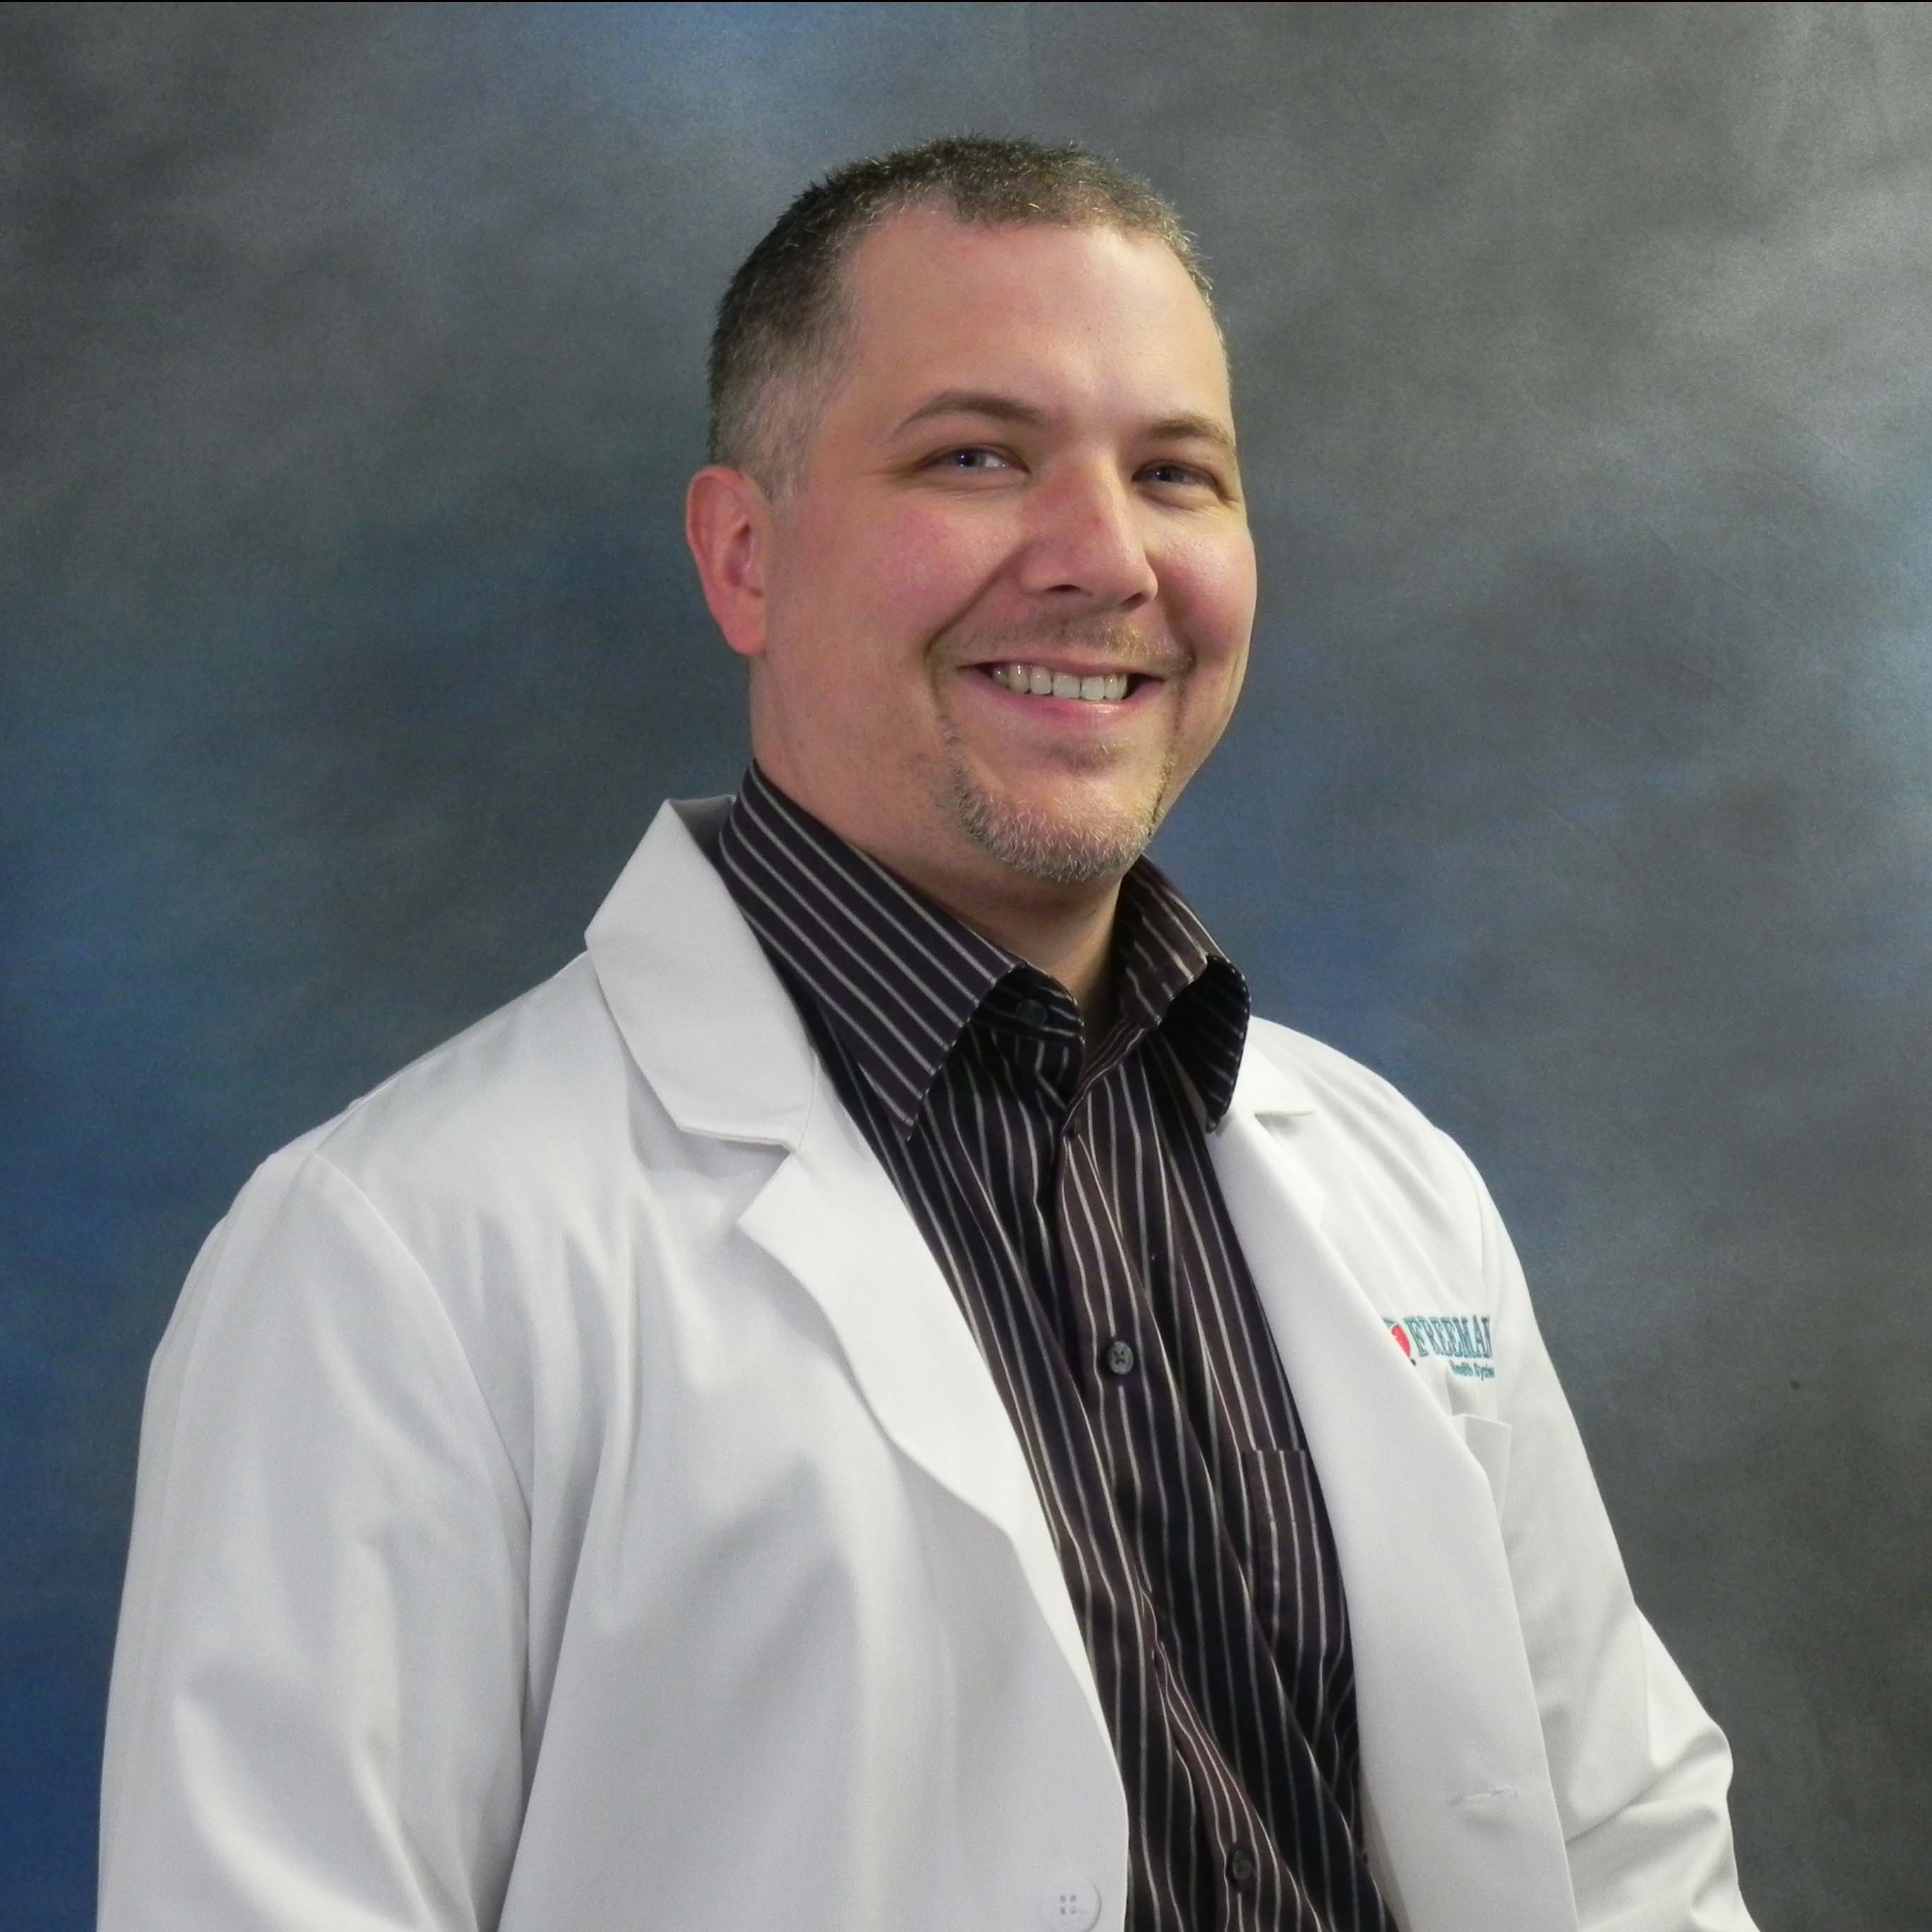 Jason L. Maxfield, MD